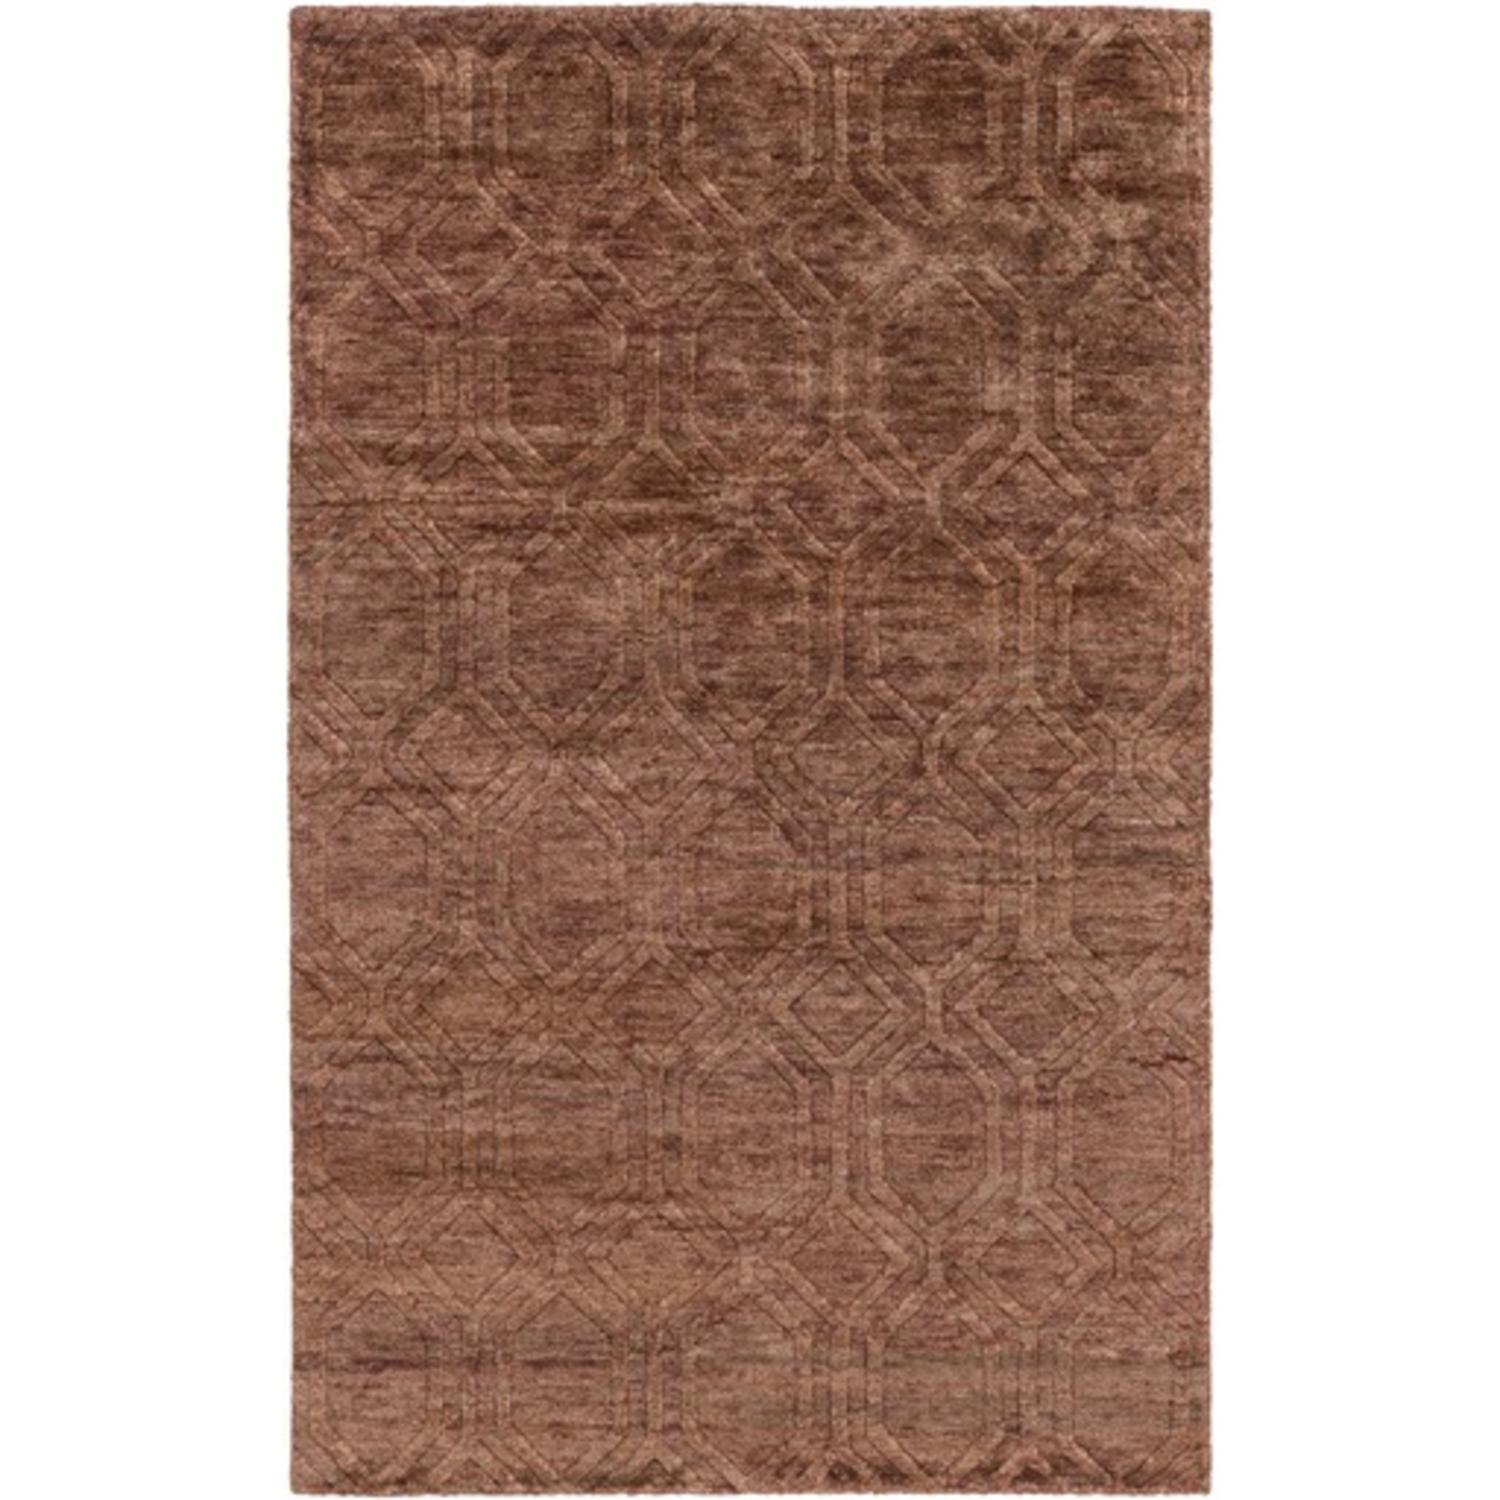 3.25' x 5.25' Athenian Boulevard Brick Red and Coconut Br...